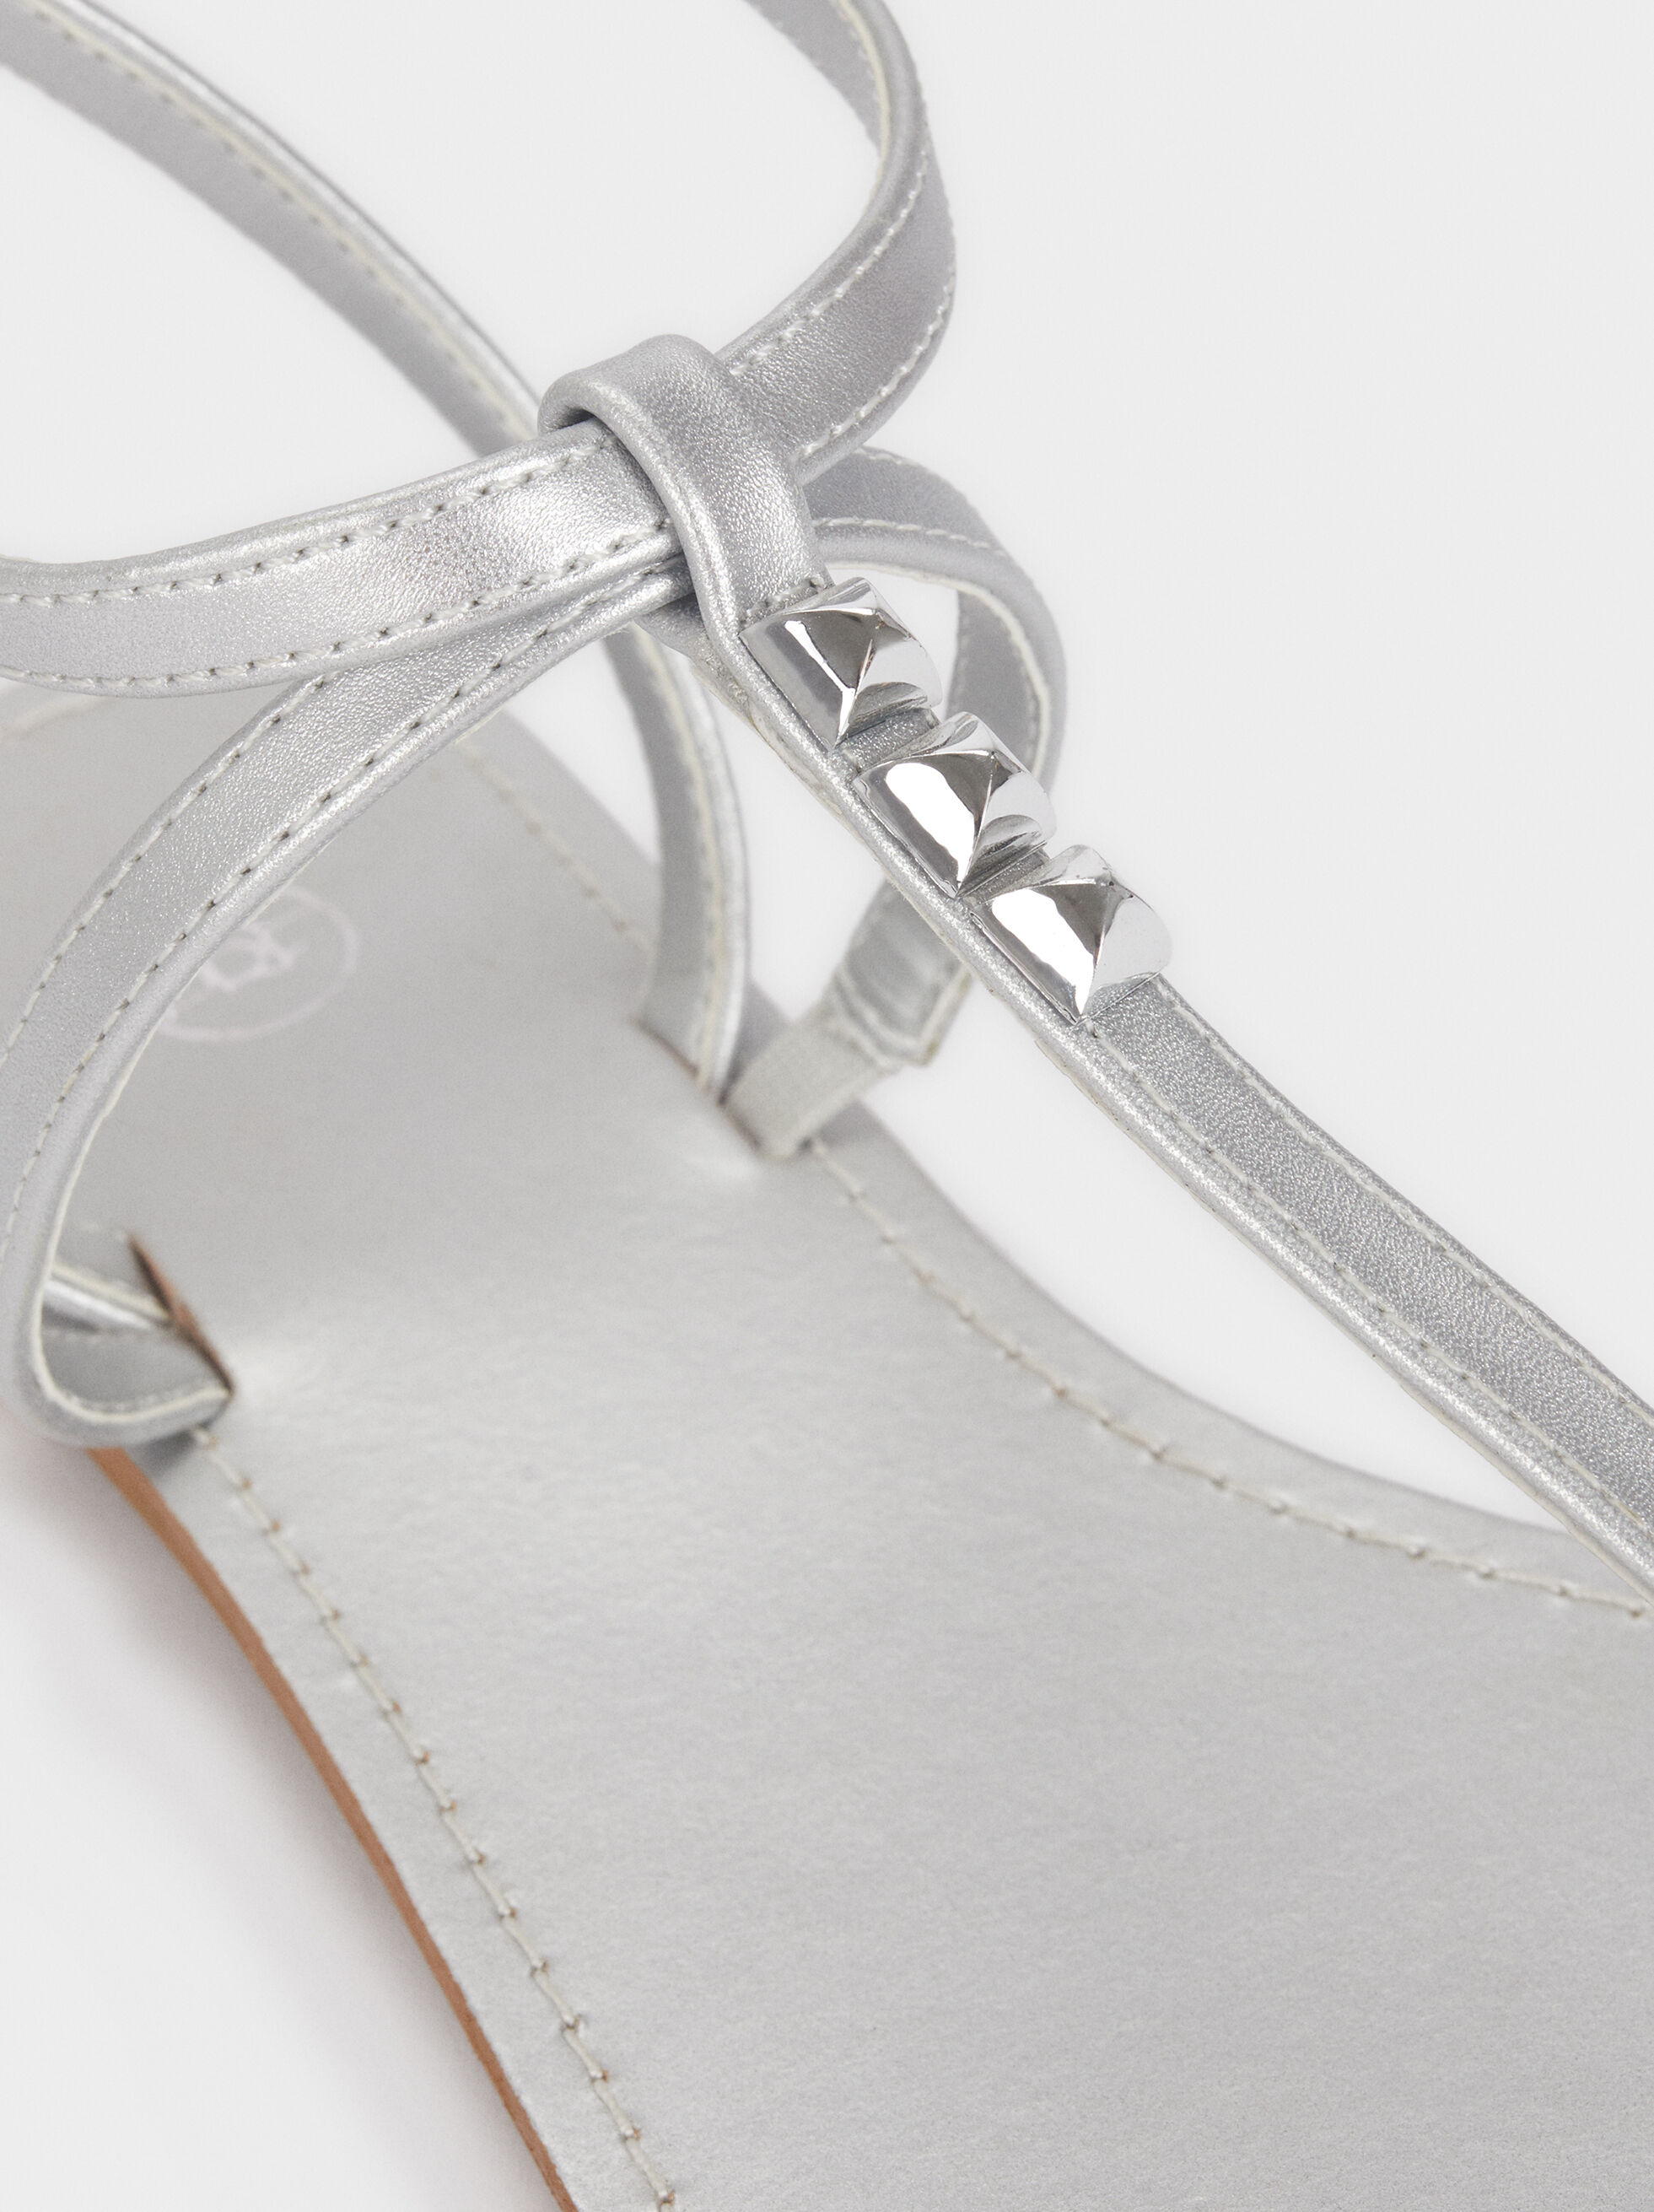 Flat Sandals With Stud Details, Silver, hi-res